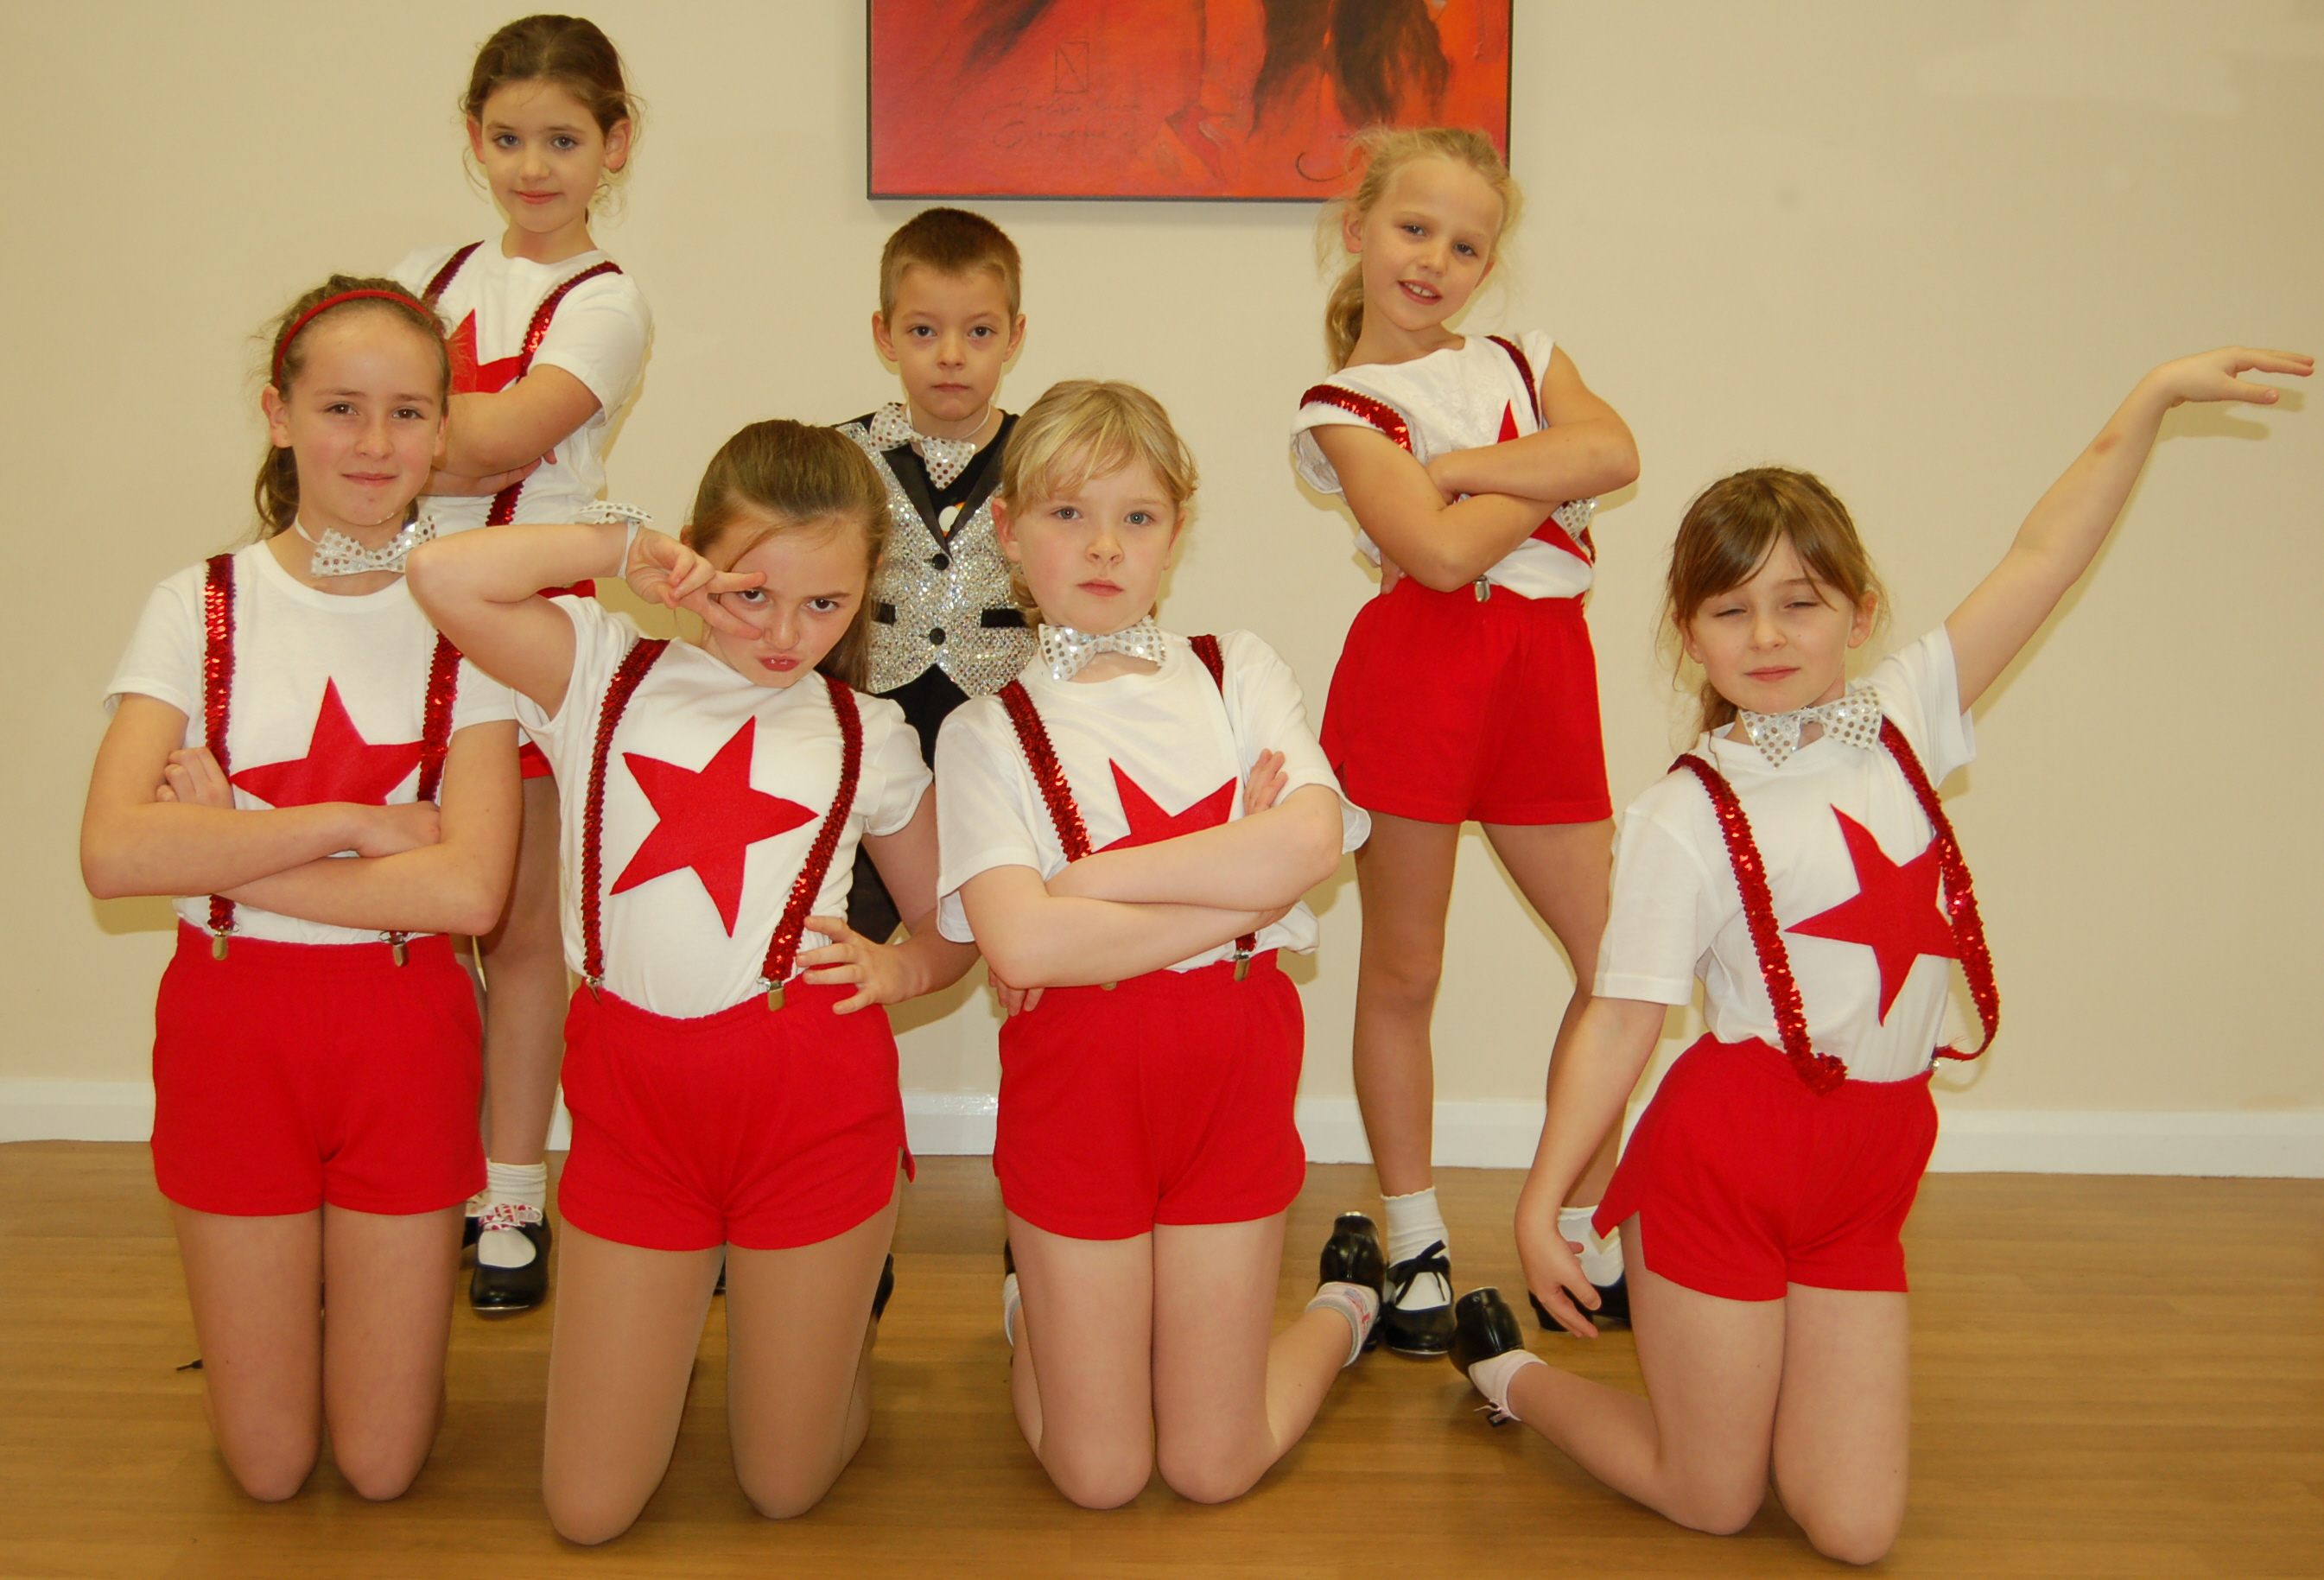 Children's tap dancing lessons